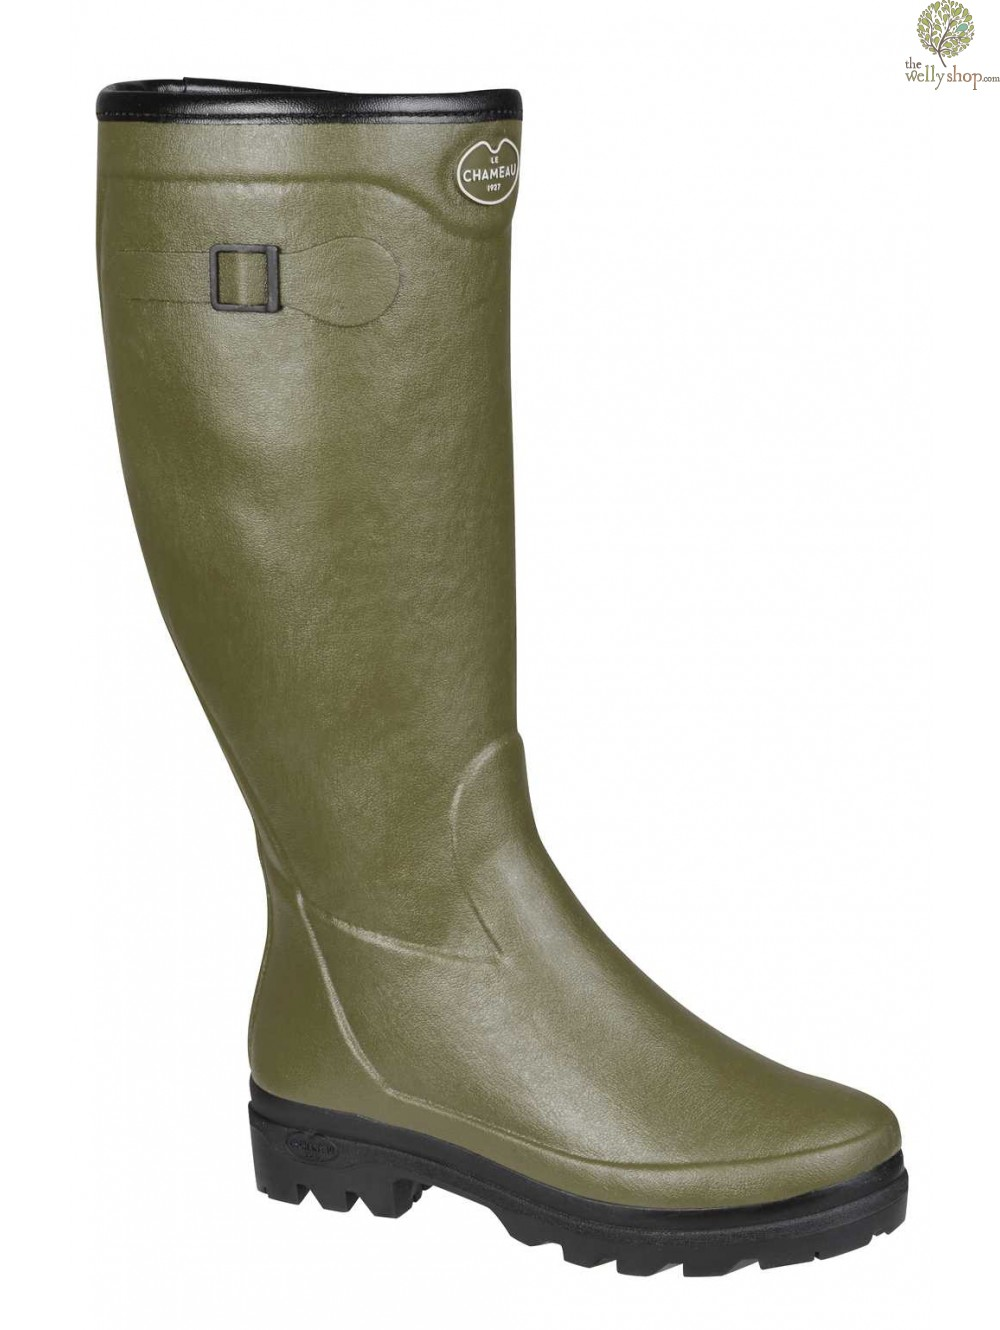 Le Chameau Country Lady Fouree Wool Lined Wellington Boots